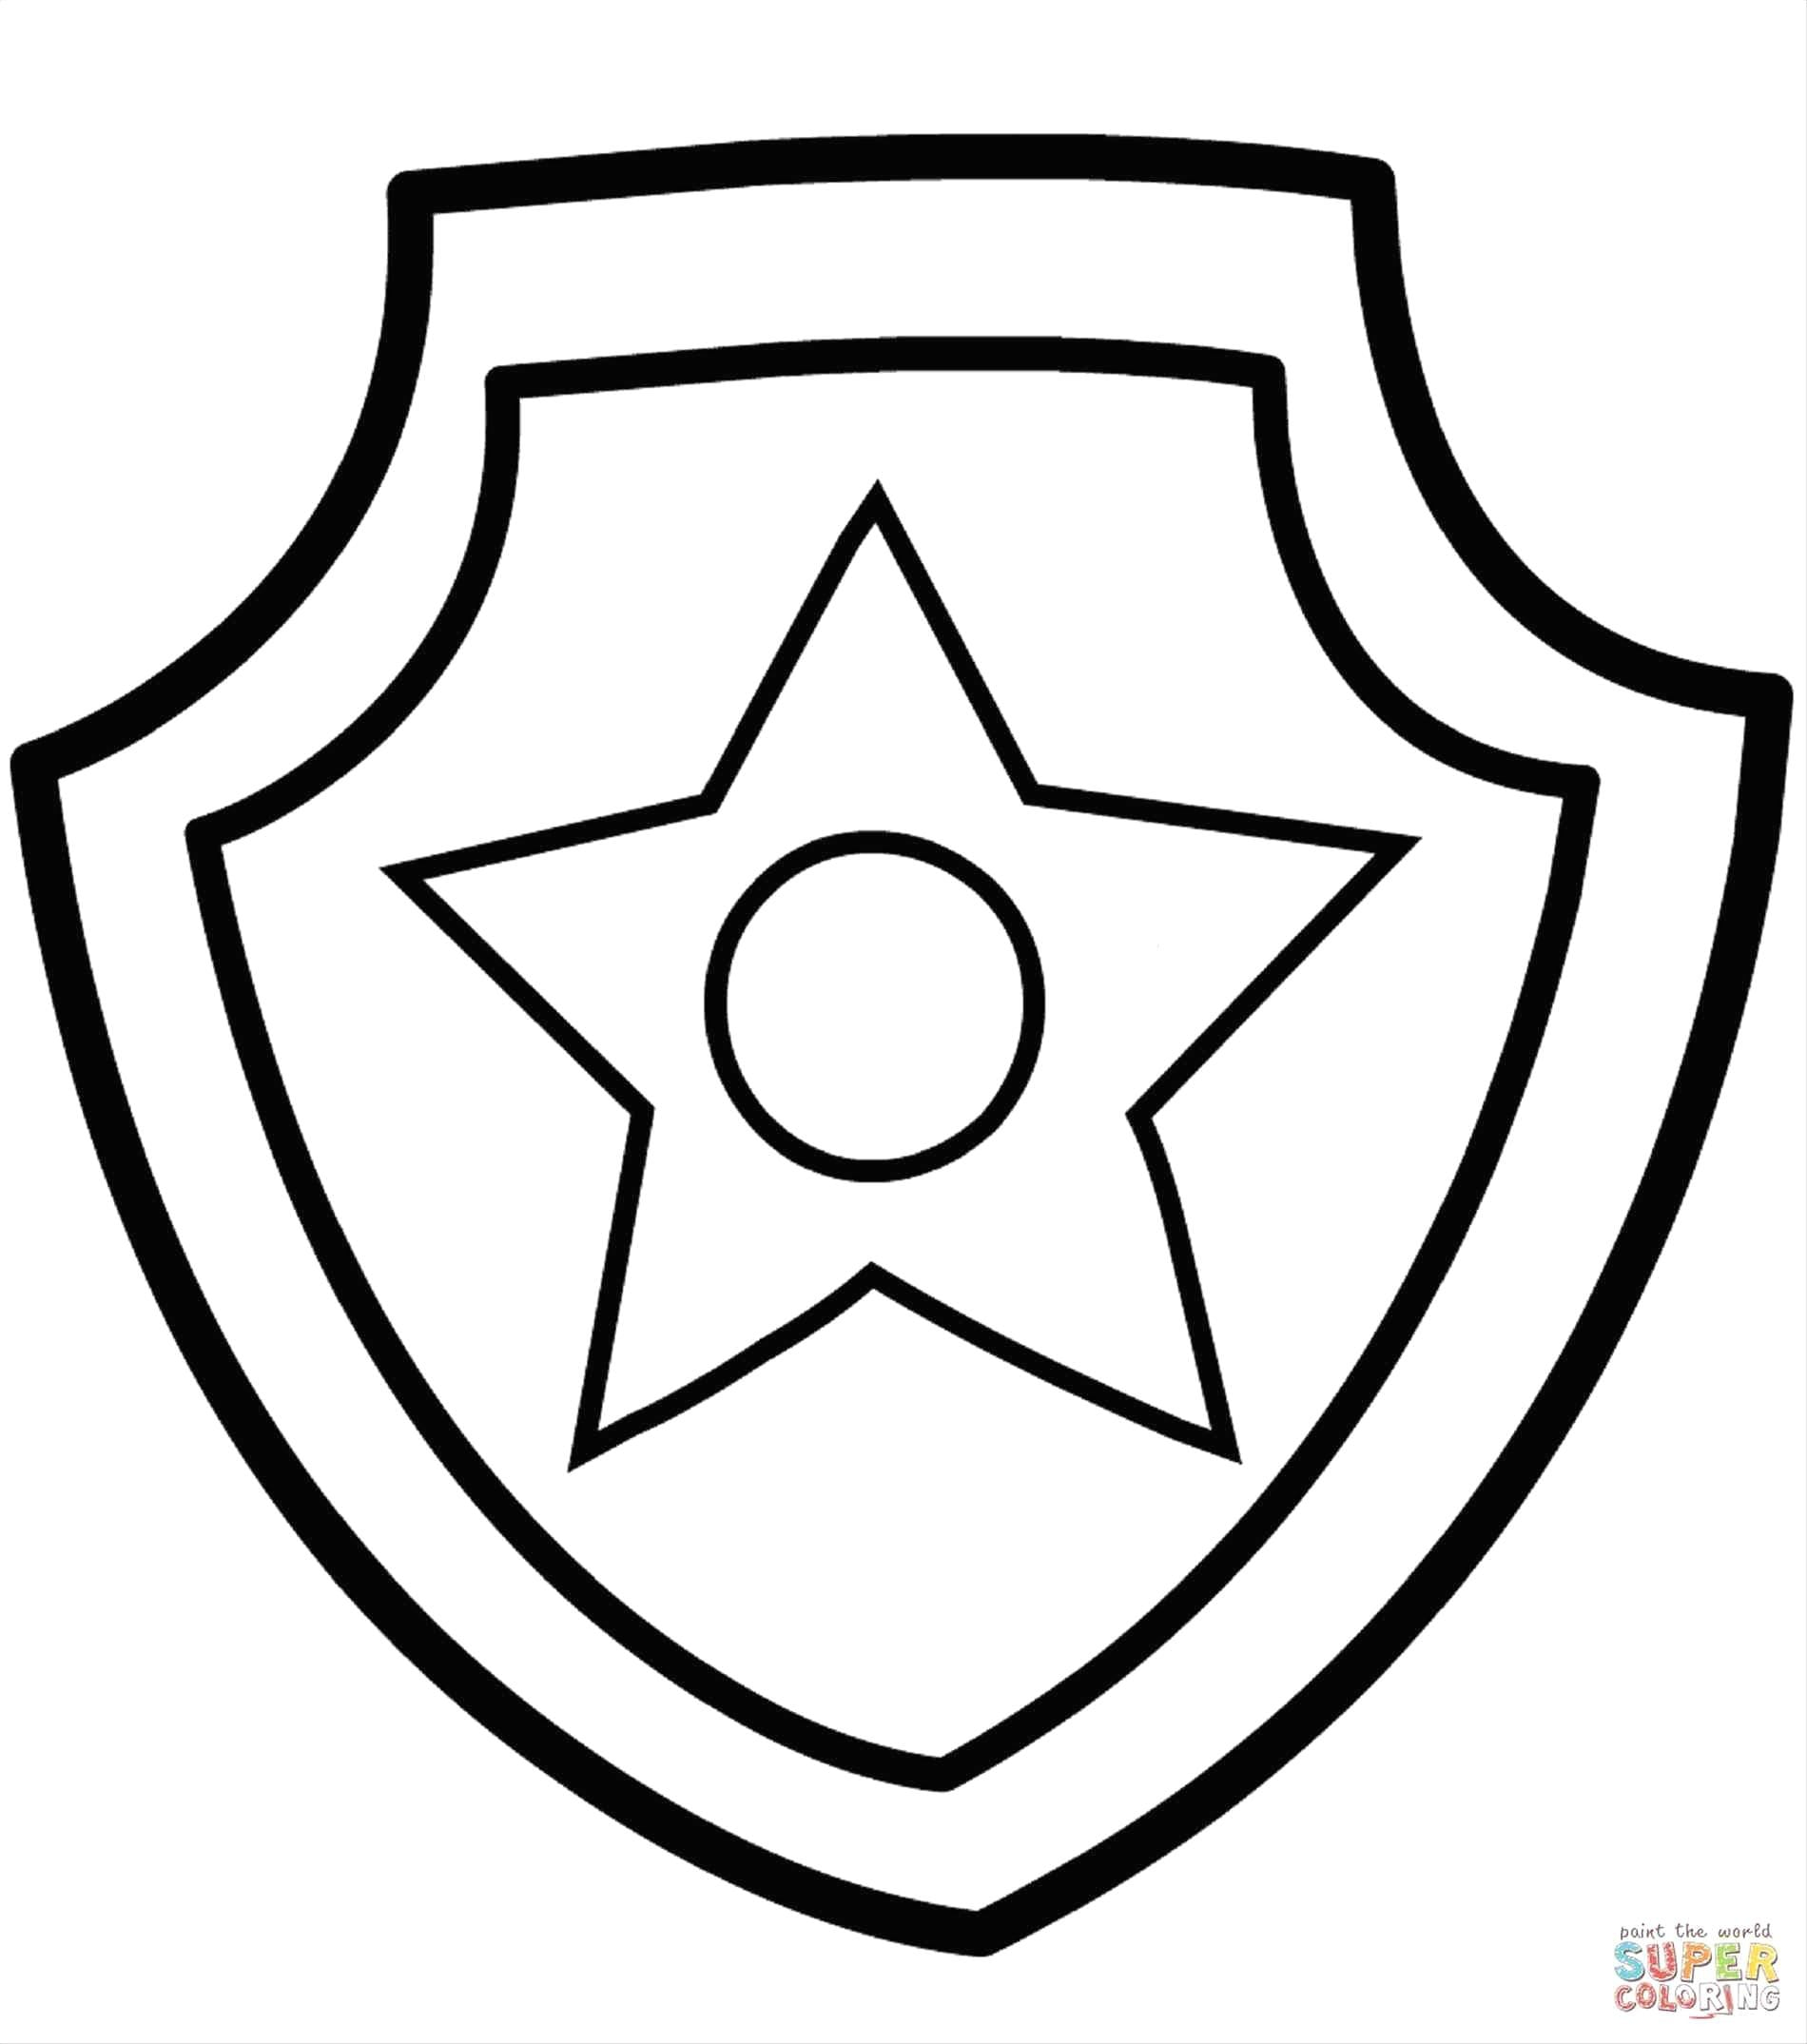 sheriff badge coloring page western sheriff badge coloring page coloring pages coloring sheriff page badge